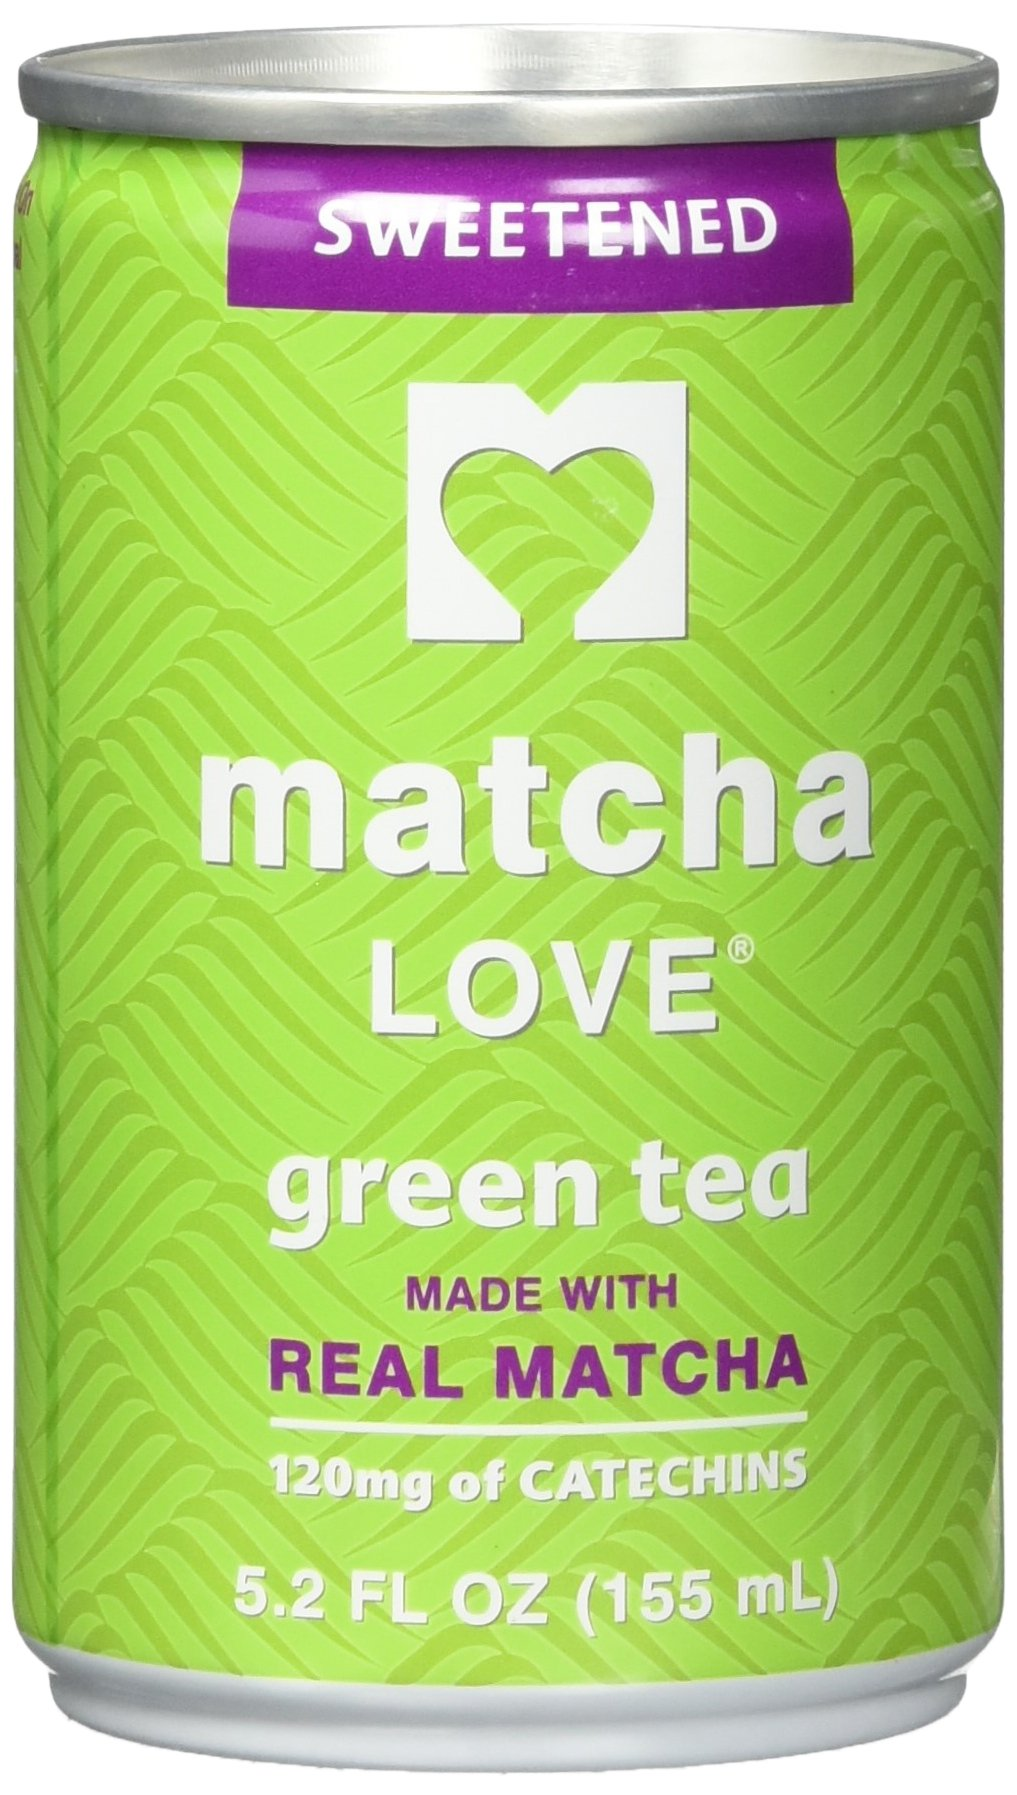 Ito En Matcha Love Green Tea, Sweetened, 5.2 Ounce (pack Of 20) by Ito En